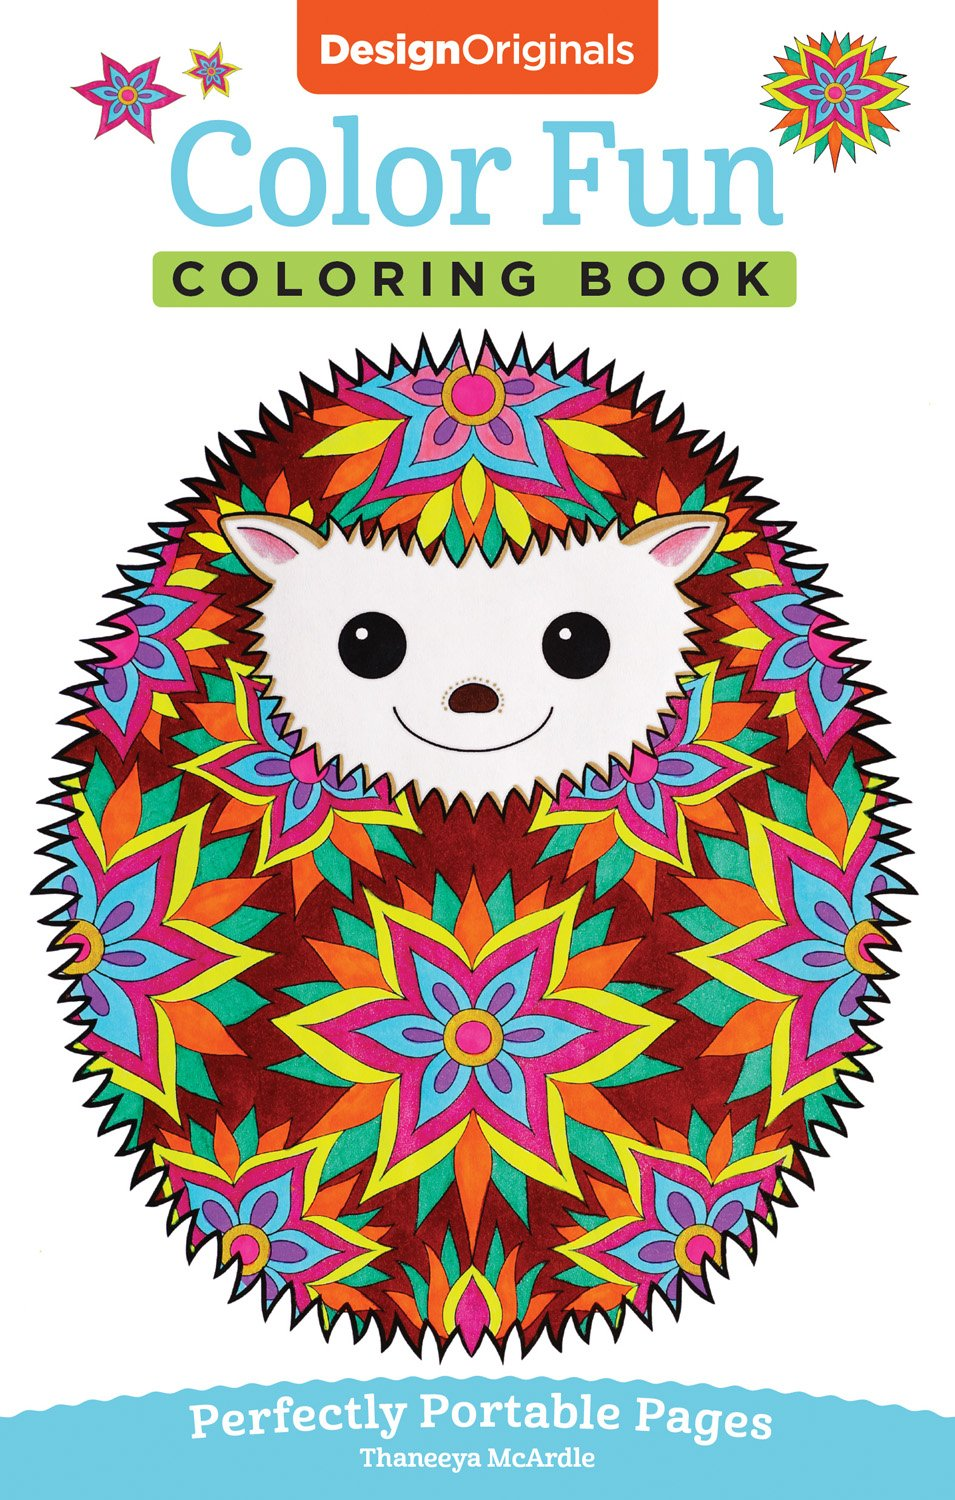 Color Fun Coloring Book: Perfectly Portable Pages (On-the-Go Coloring Book) (Design Originals) Extra-Thick High-Quality Perforated Pages & Convenient 5x8 Size to Take Along Wherever You Go